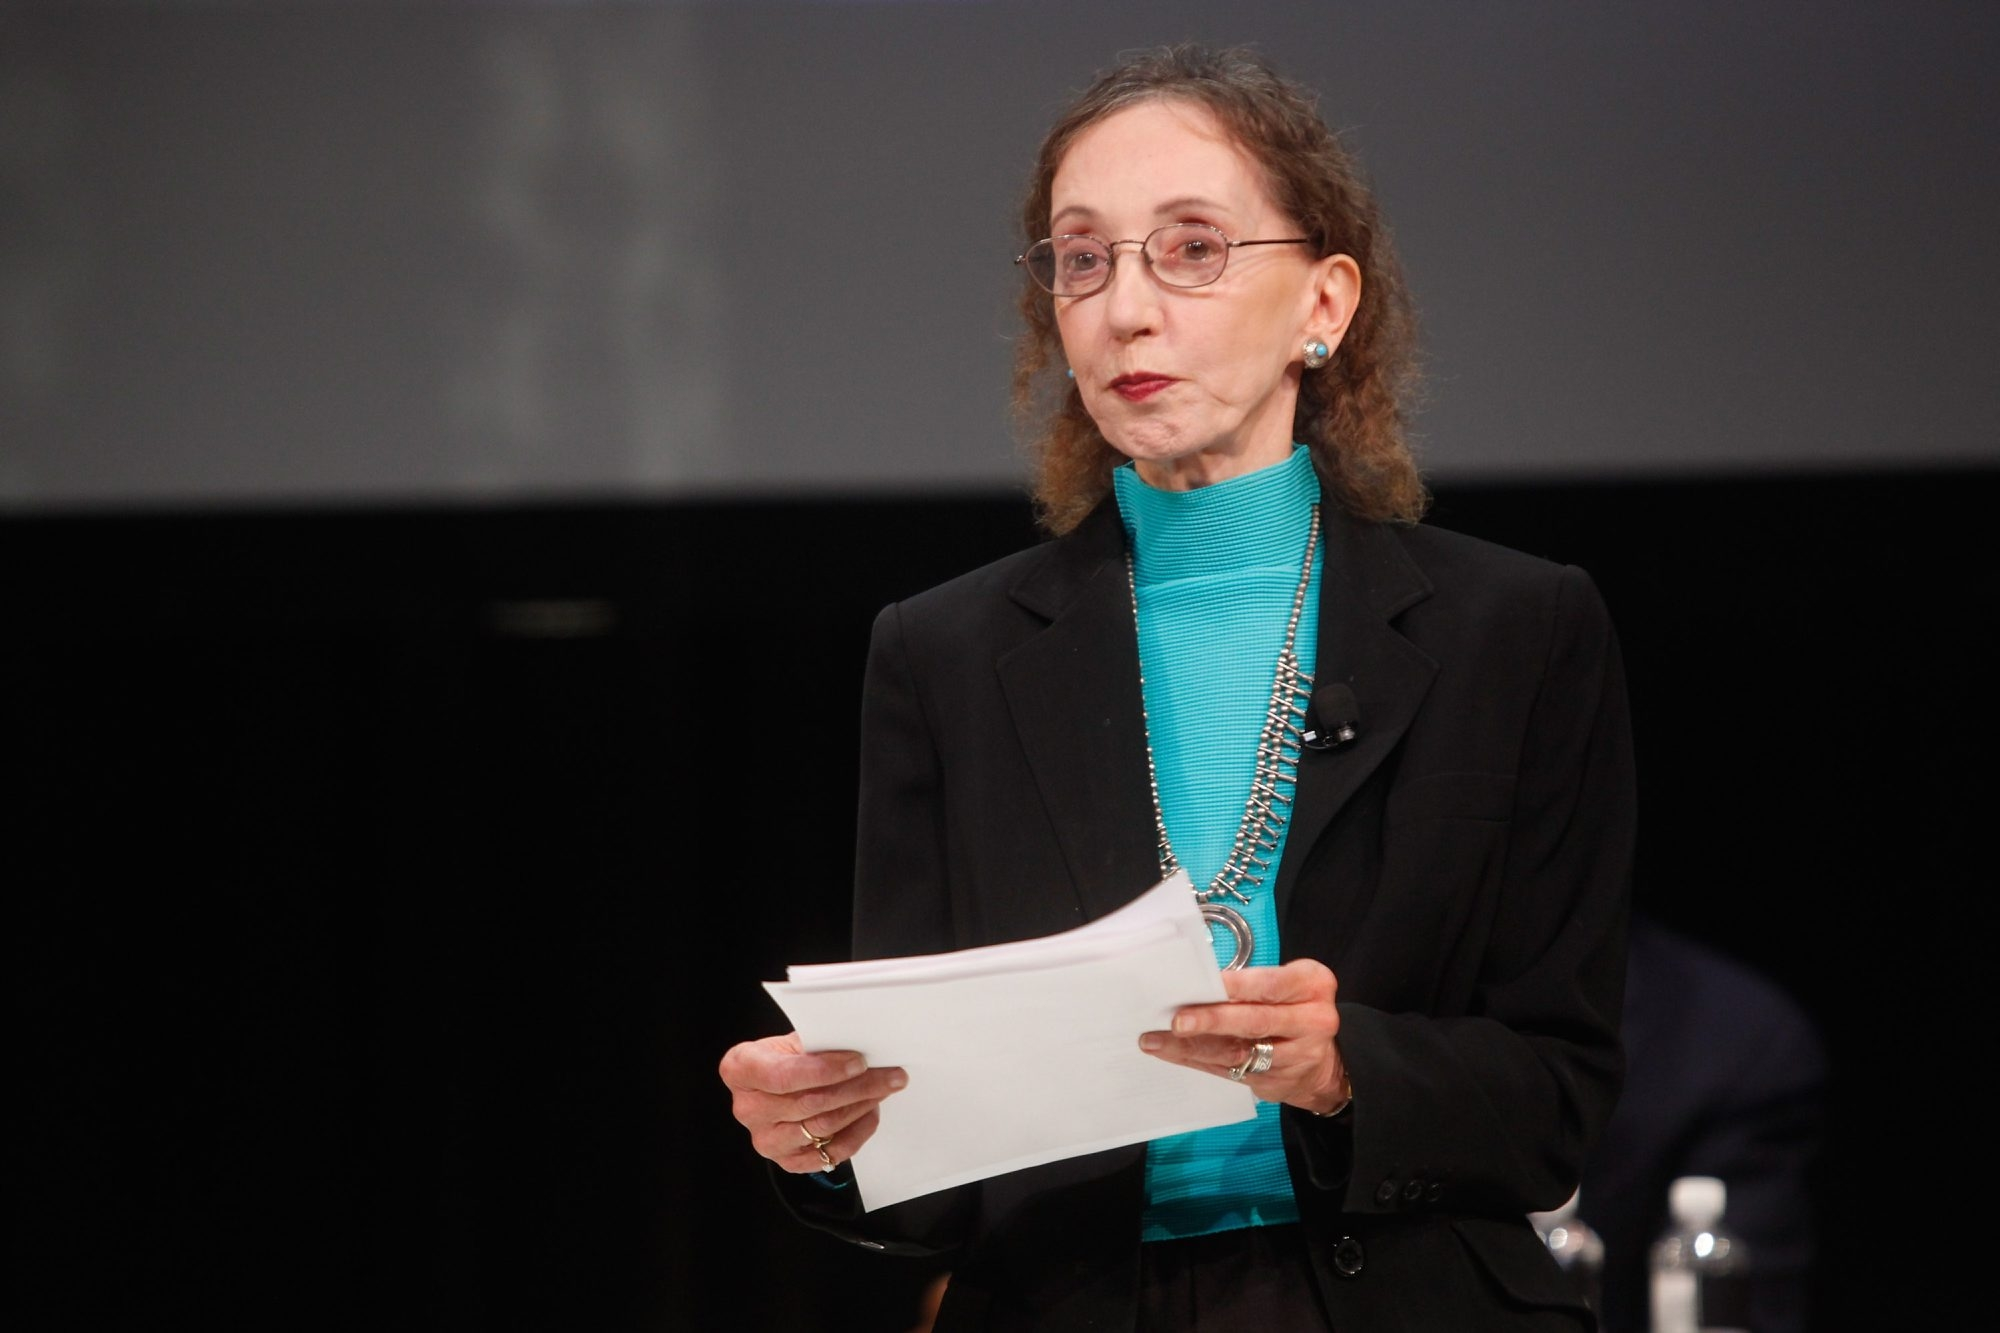 Joyce Carol Oates has been mostly silent about her childhood here – until now.